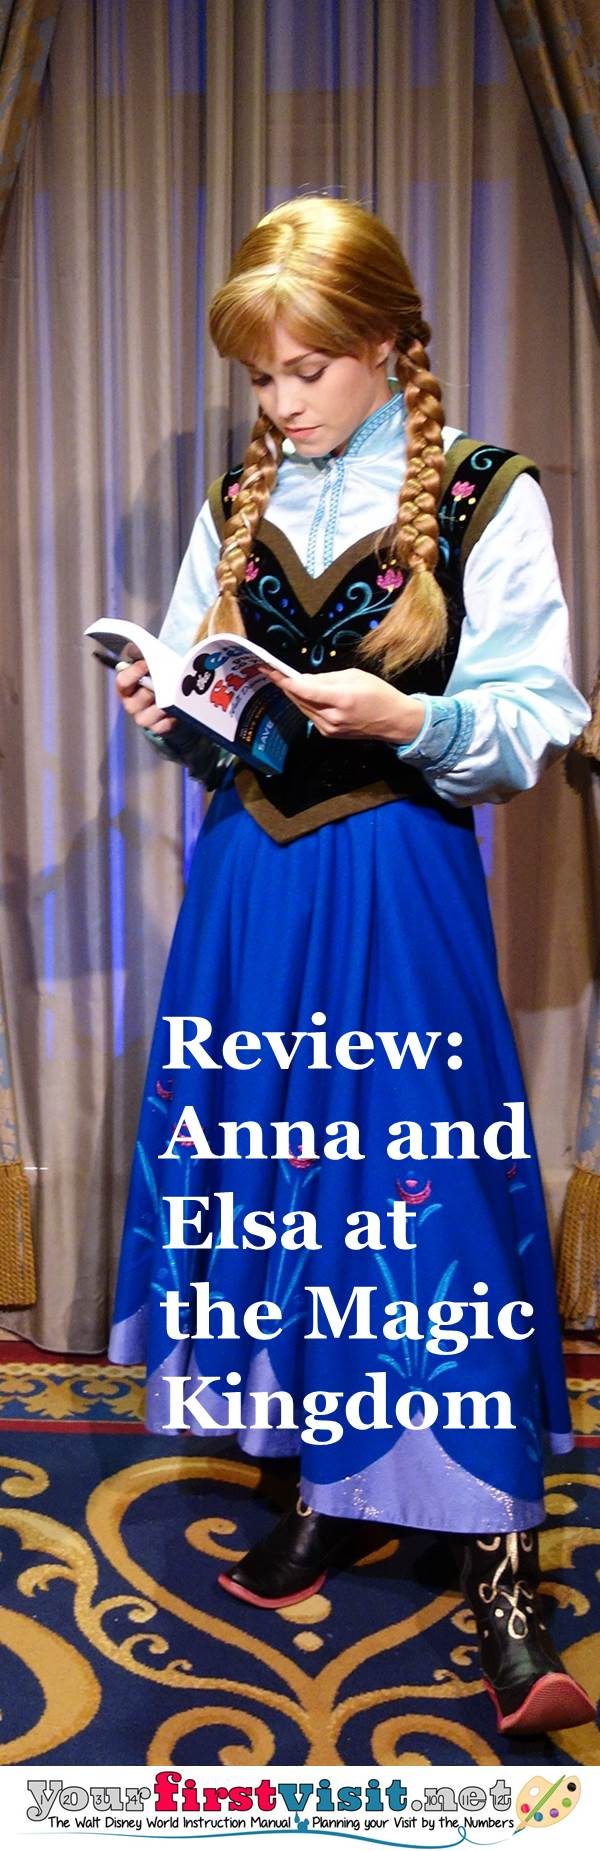 Review meeting anna and elsa at disney worlds magic kingdom review anna and elsa at the magic kingdom kristyandbryce Gallery